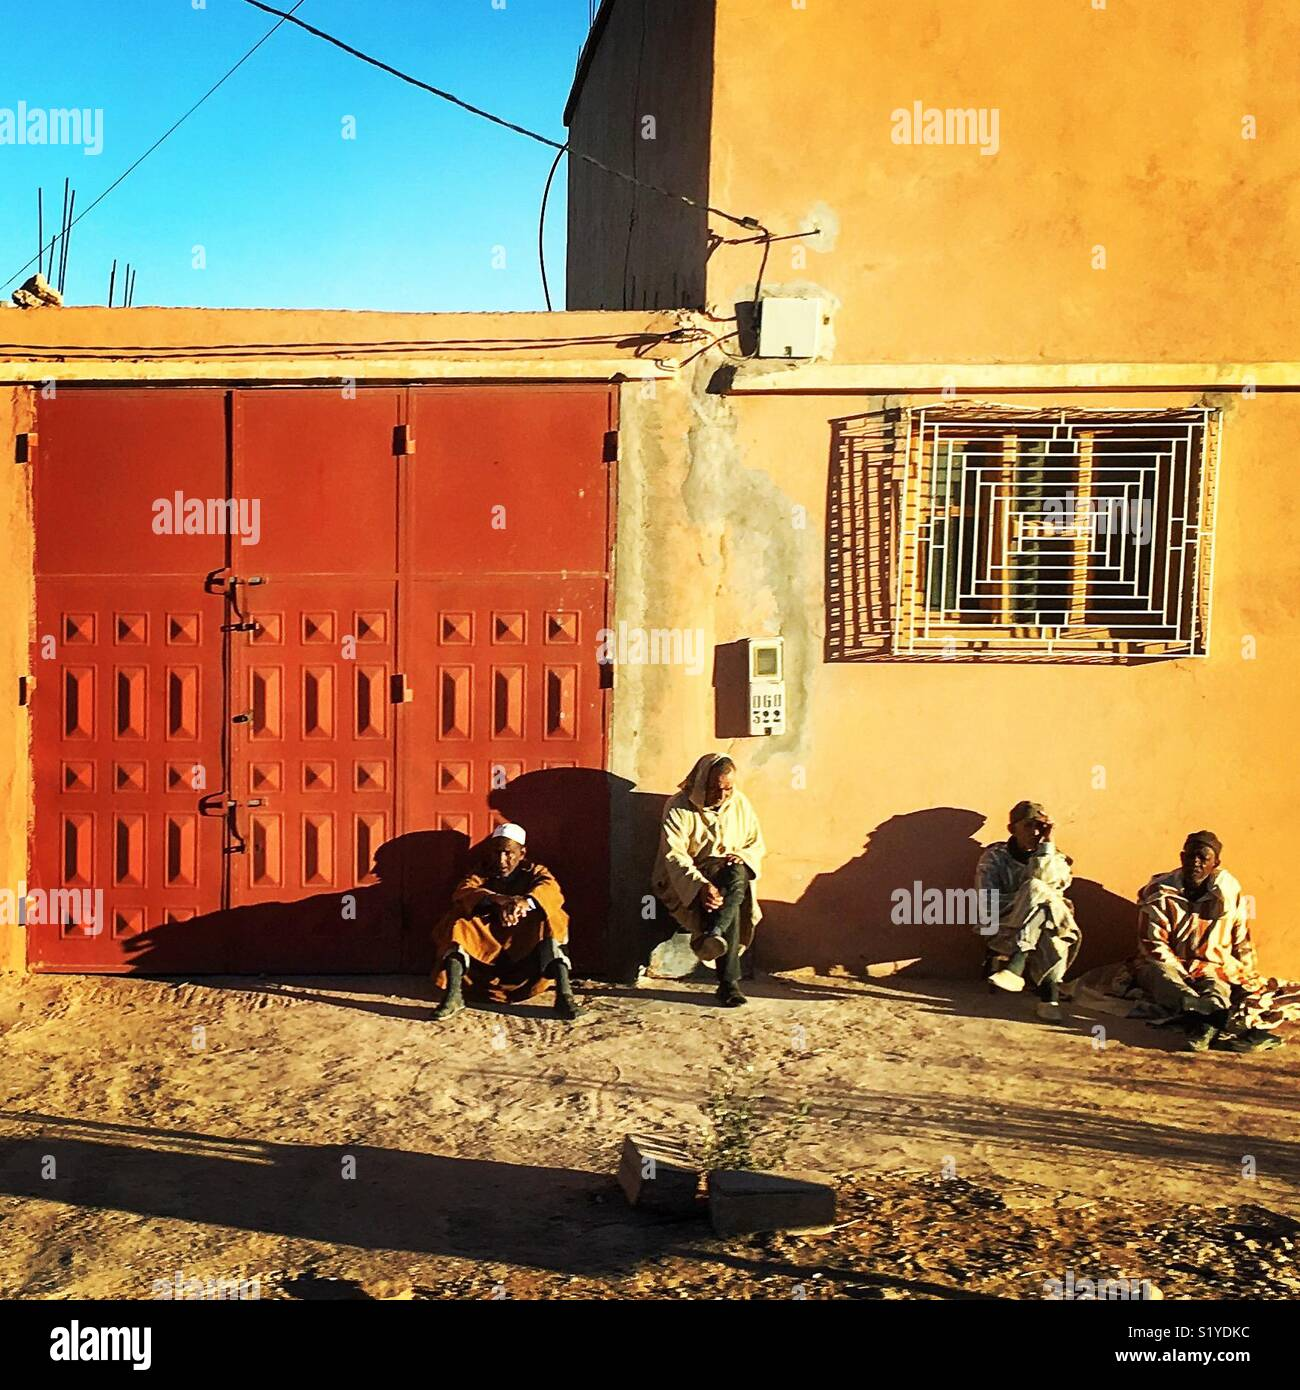 Morocco people lifestyle in a day Stock Photo